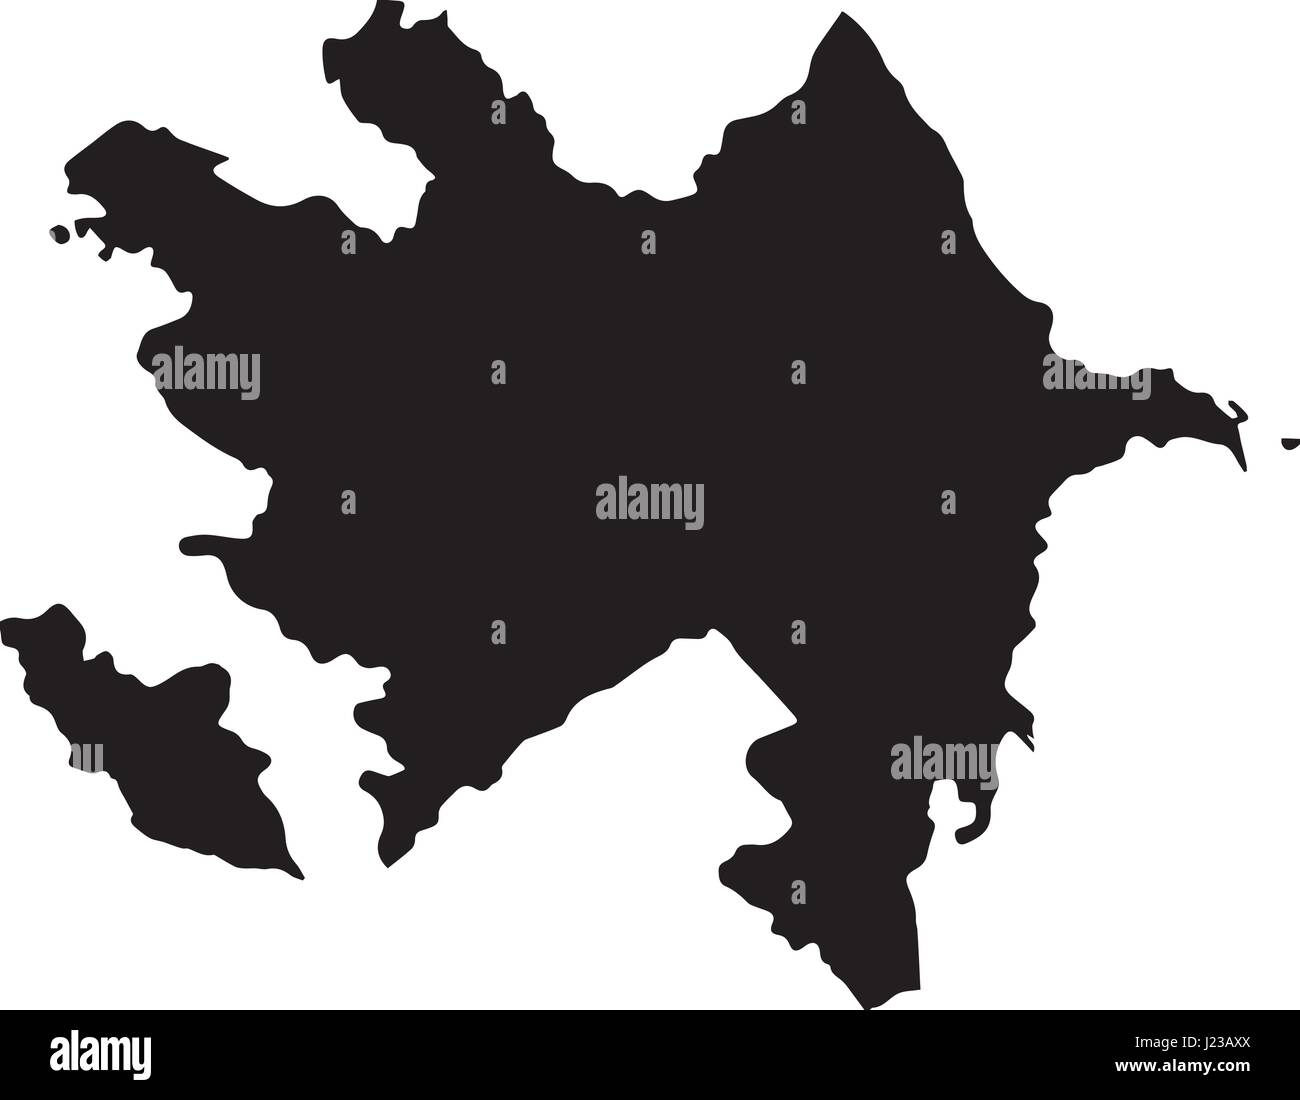 Black map of Azerbaijan on a white background - Stock Vector